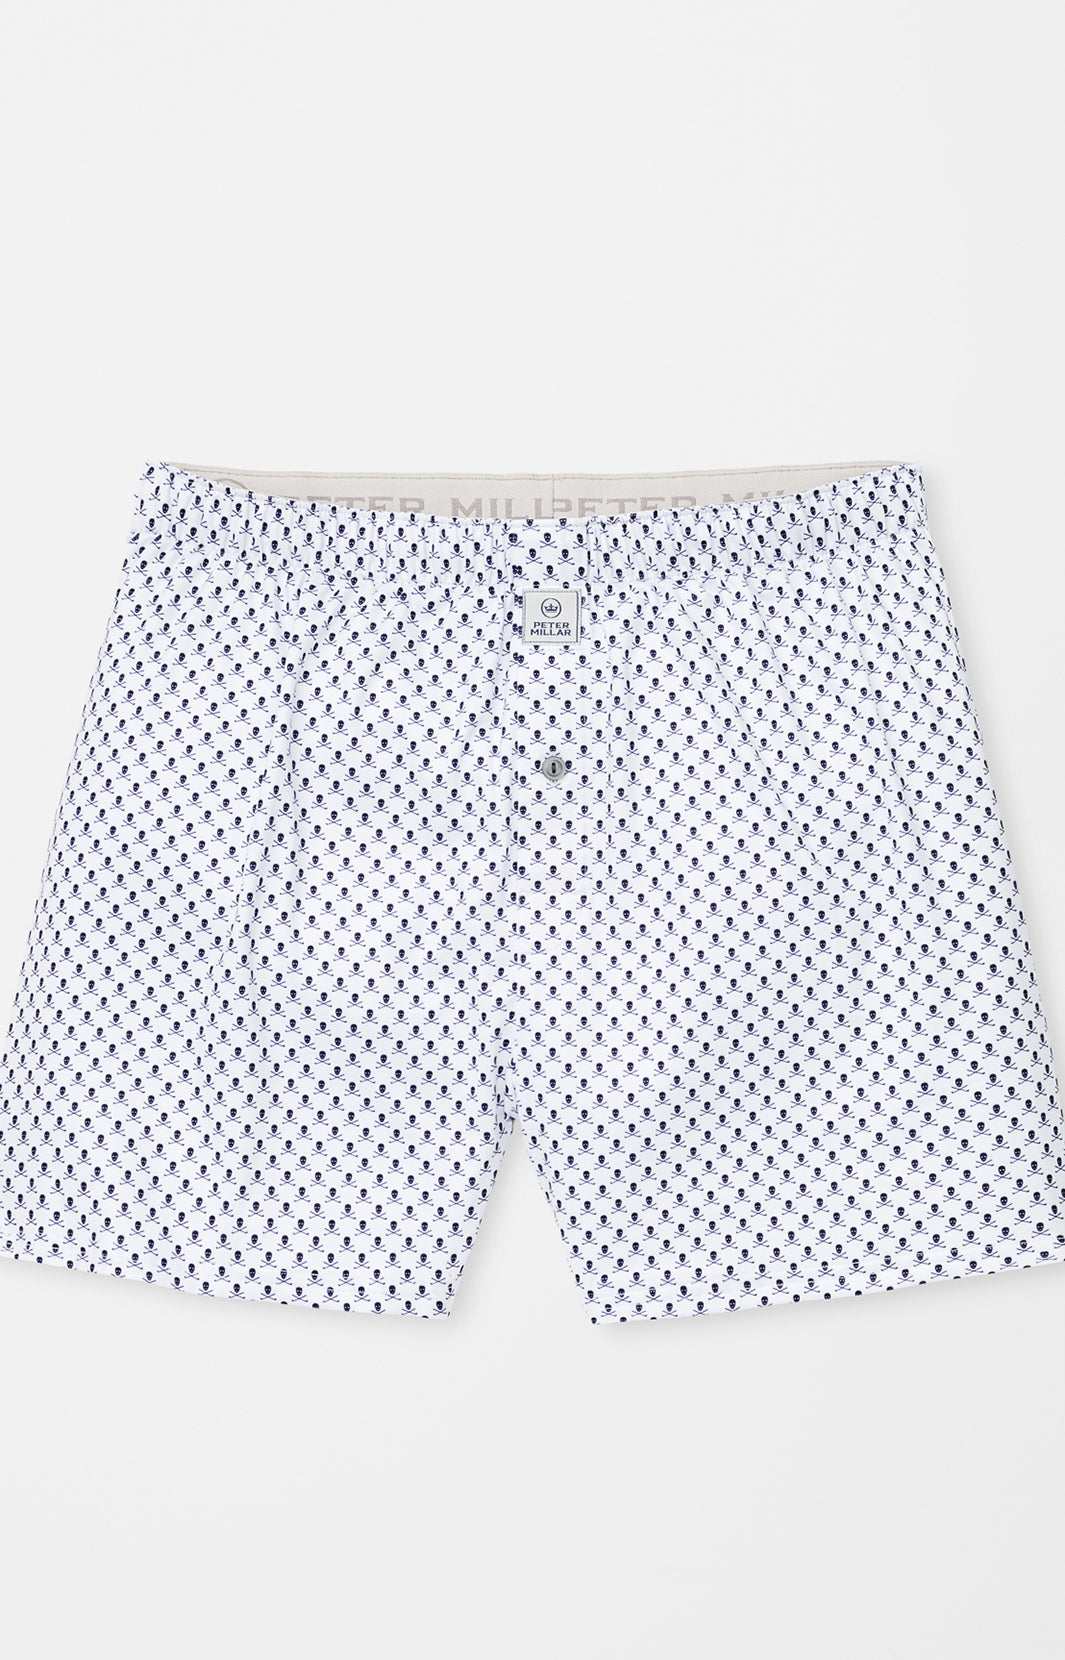 TAXES SKULLS AND CLUBS BOXER - WHITE